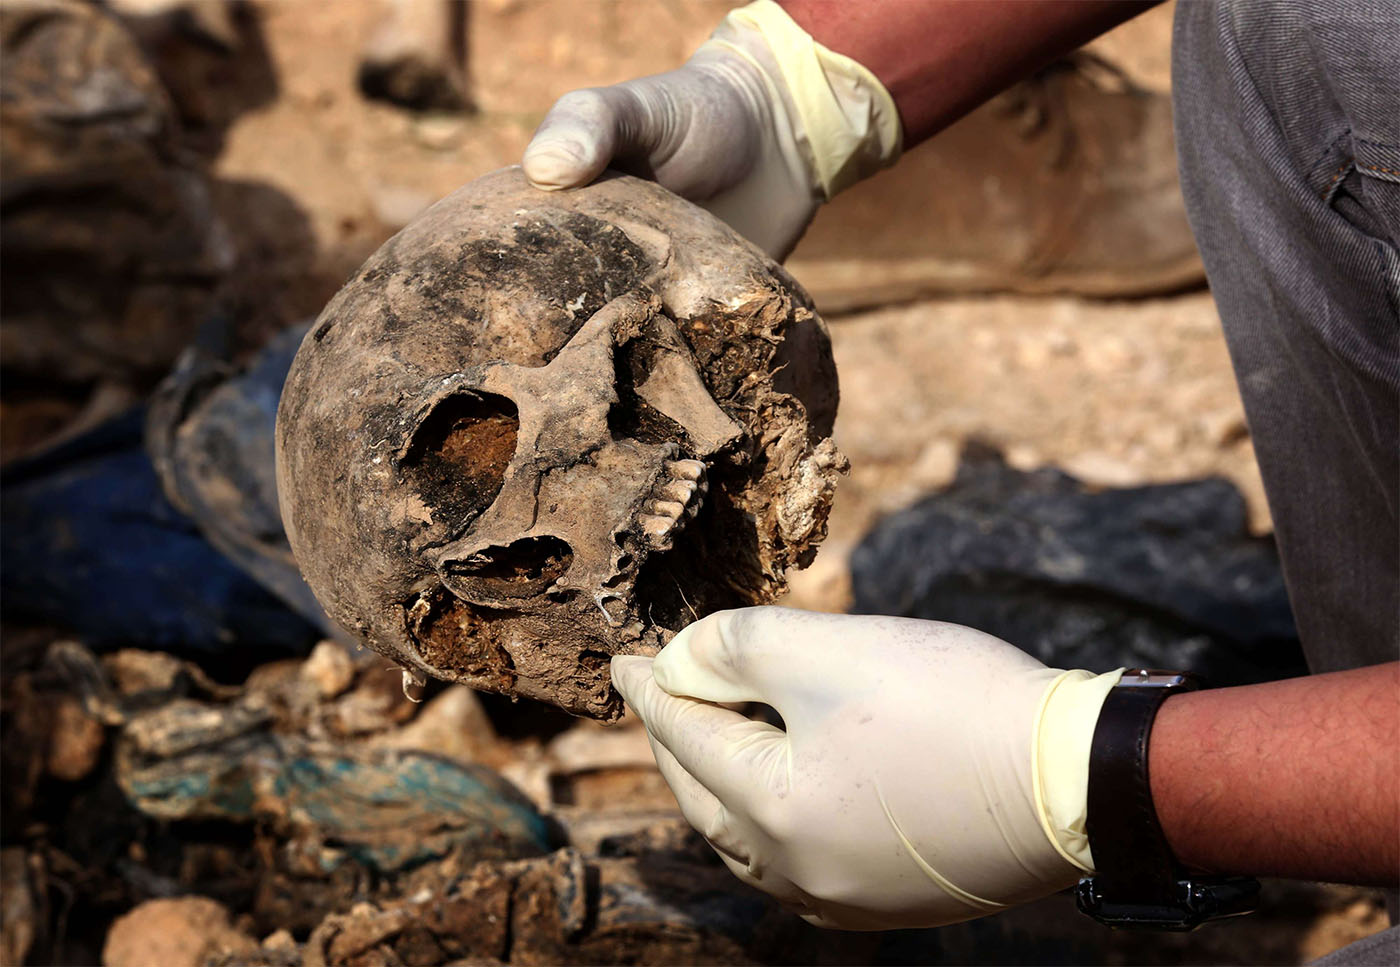 More than 200 mass graves containing up to 12,000 bodies have been recently discovered in Iraq